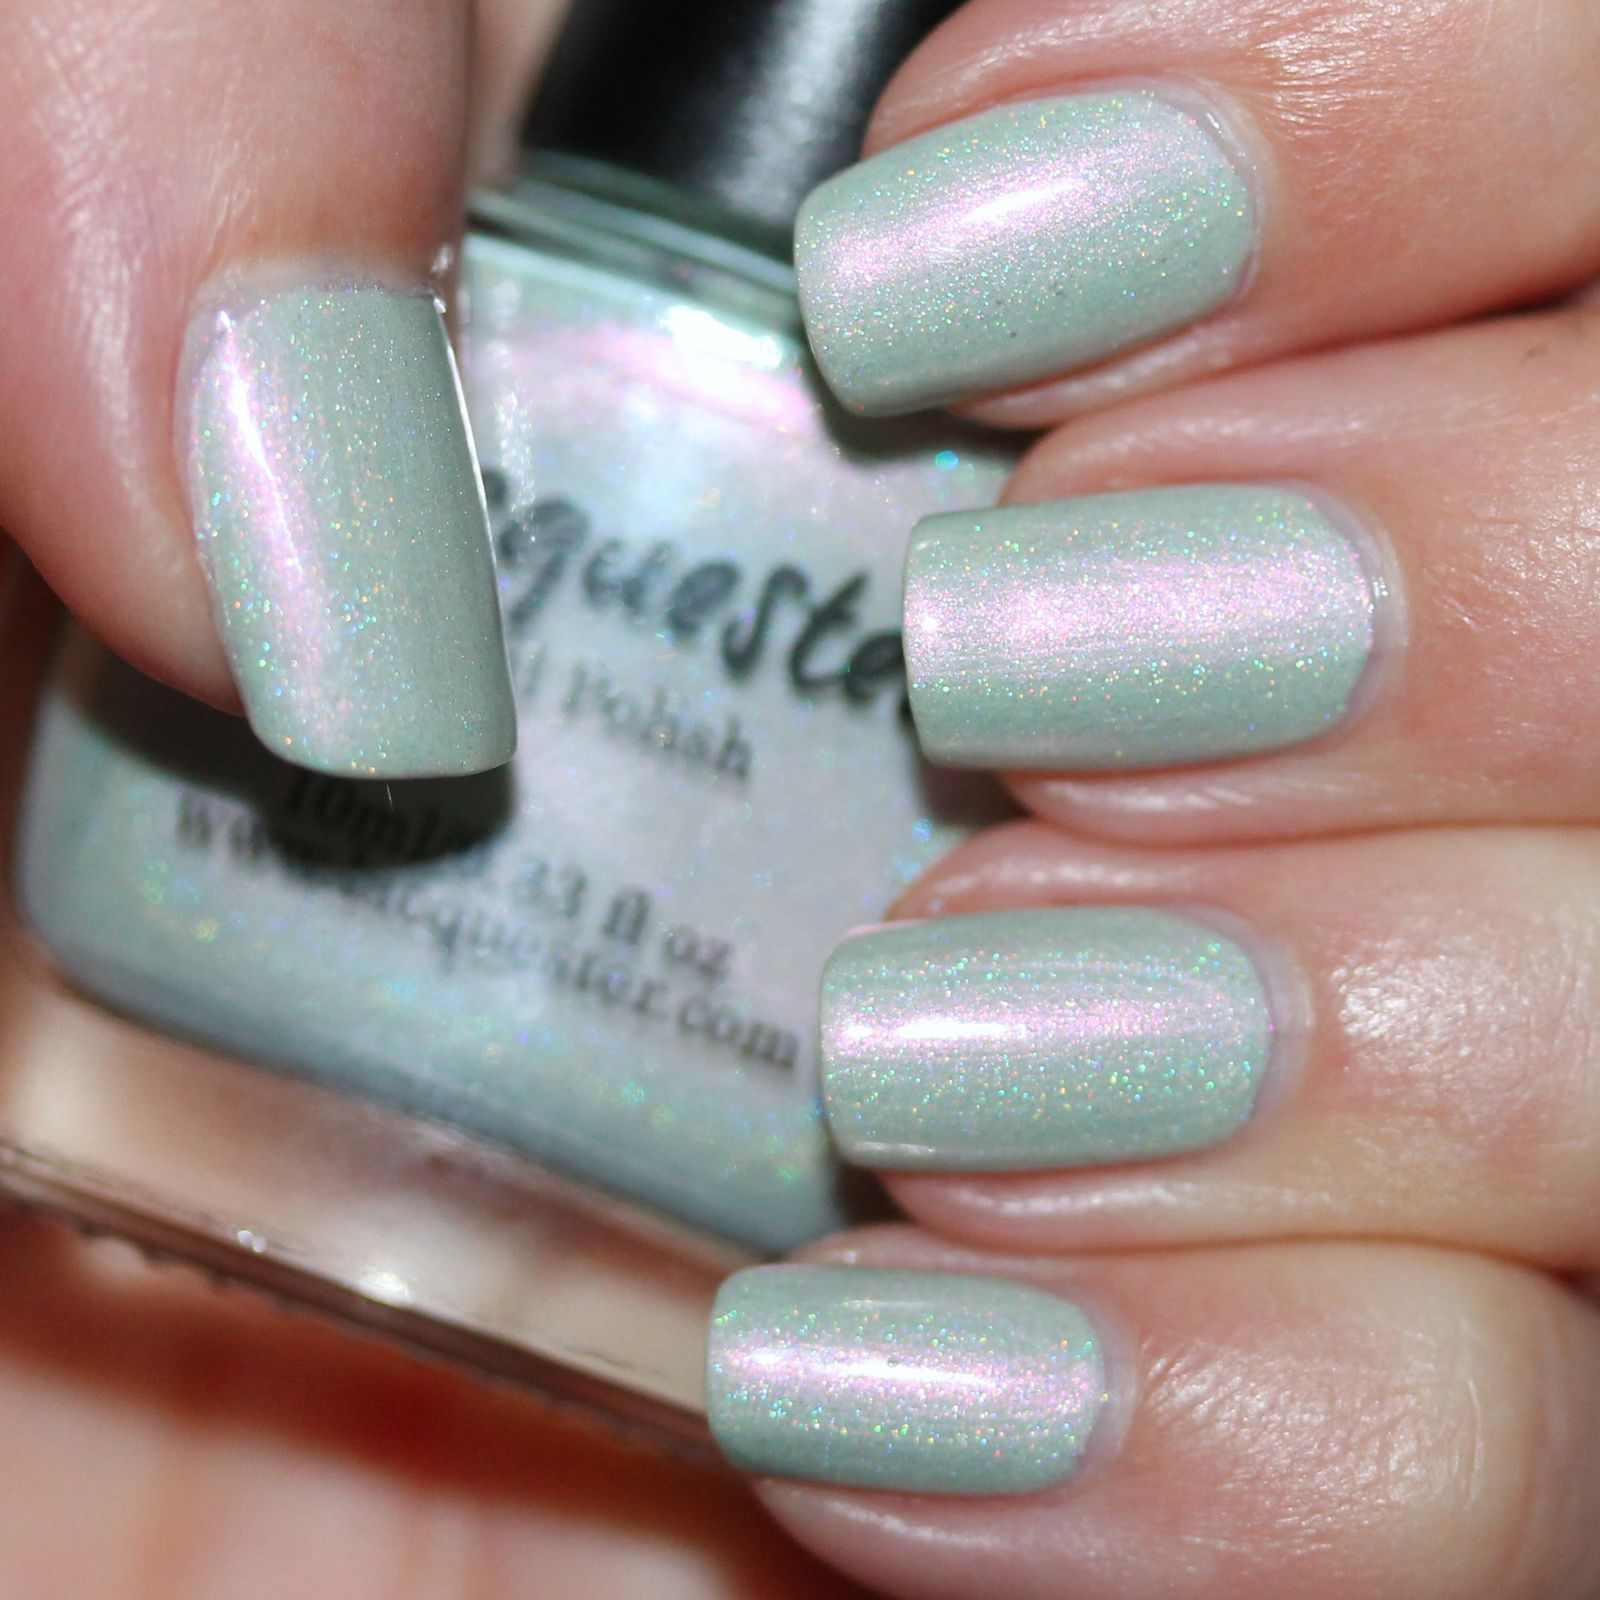 Sally Hansen Complete Care 4-in-1 Extra Moisturizing Nail Treatment / Lacquester Mint Condition (H) / Poshe Top Coat